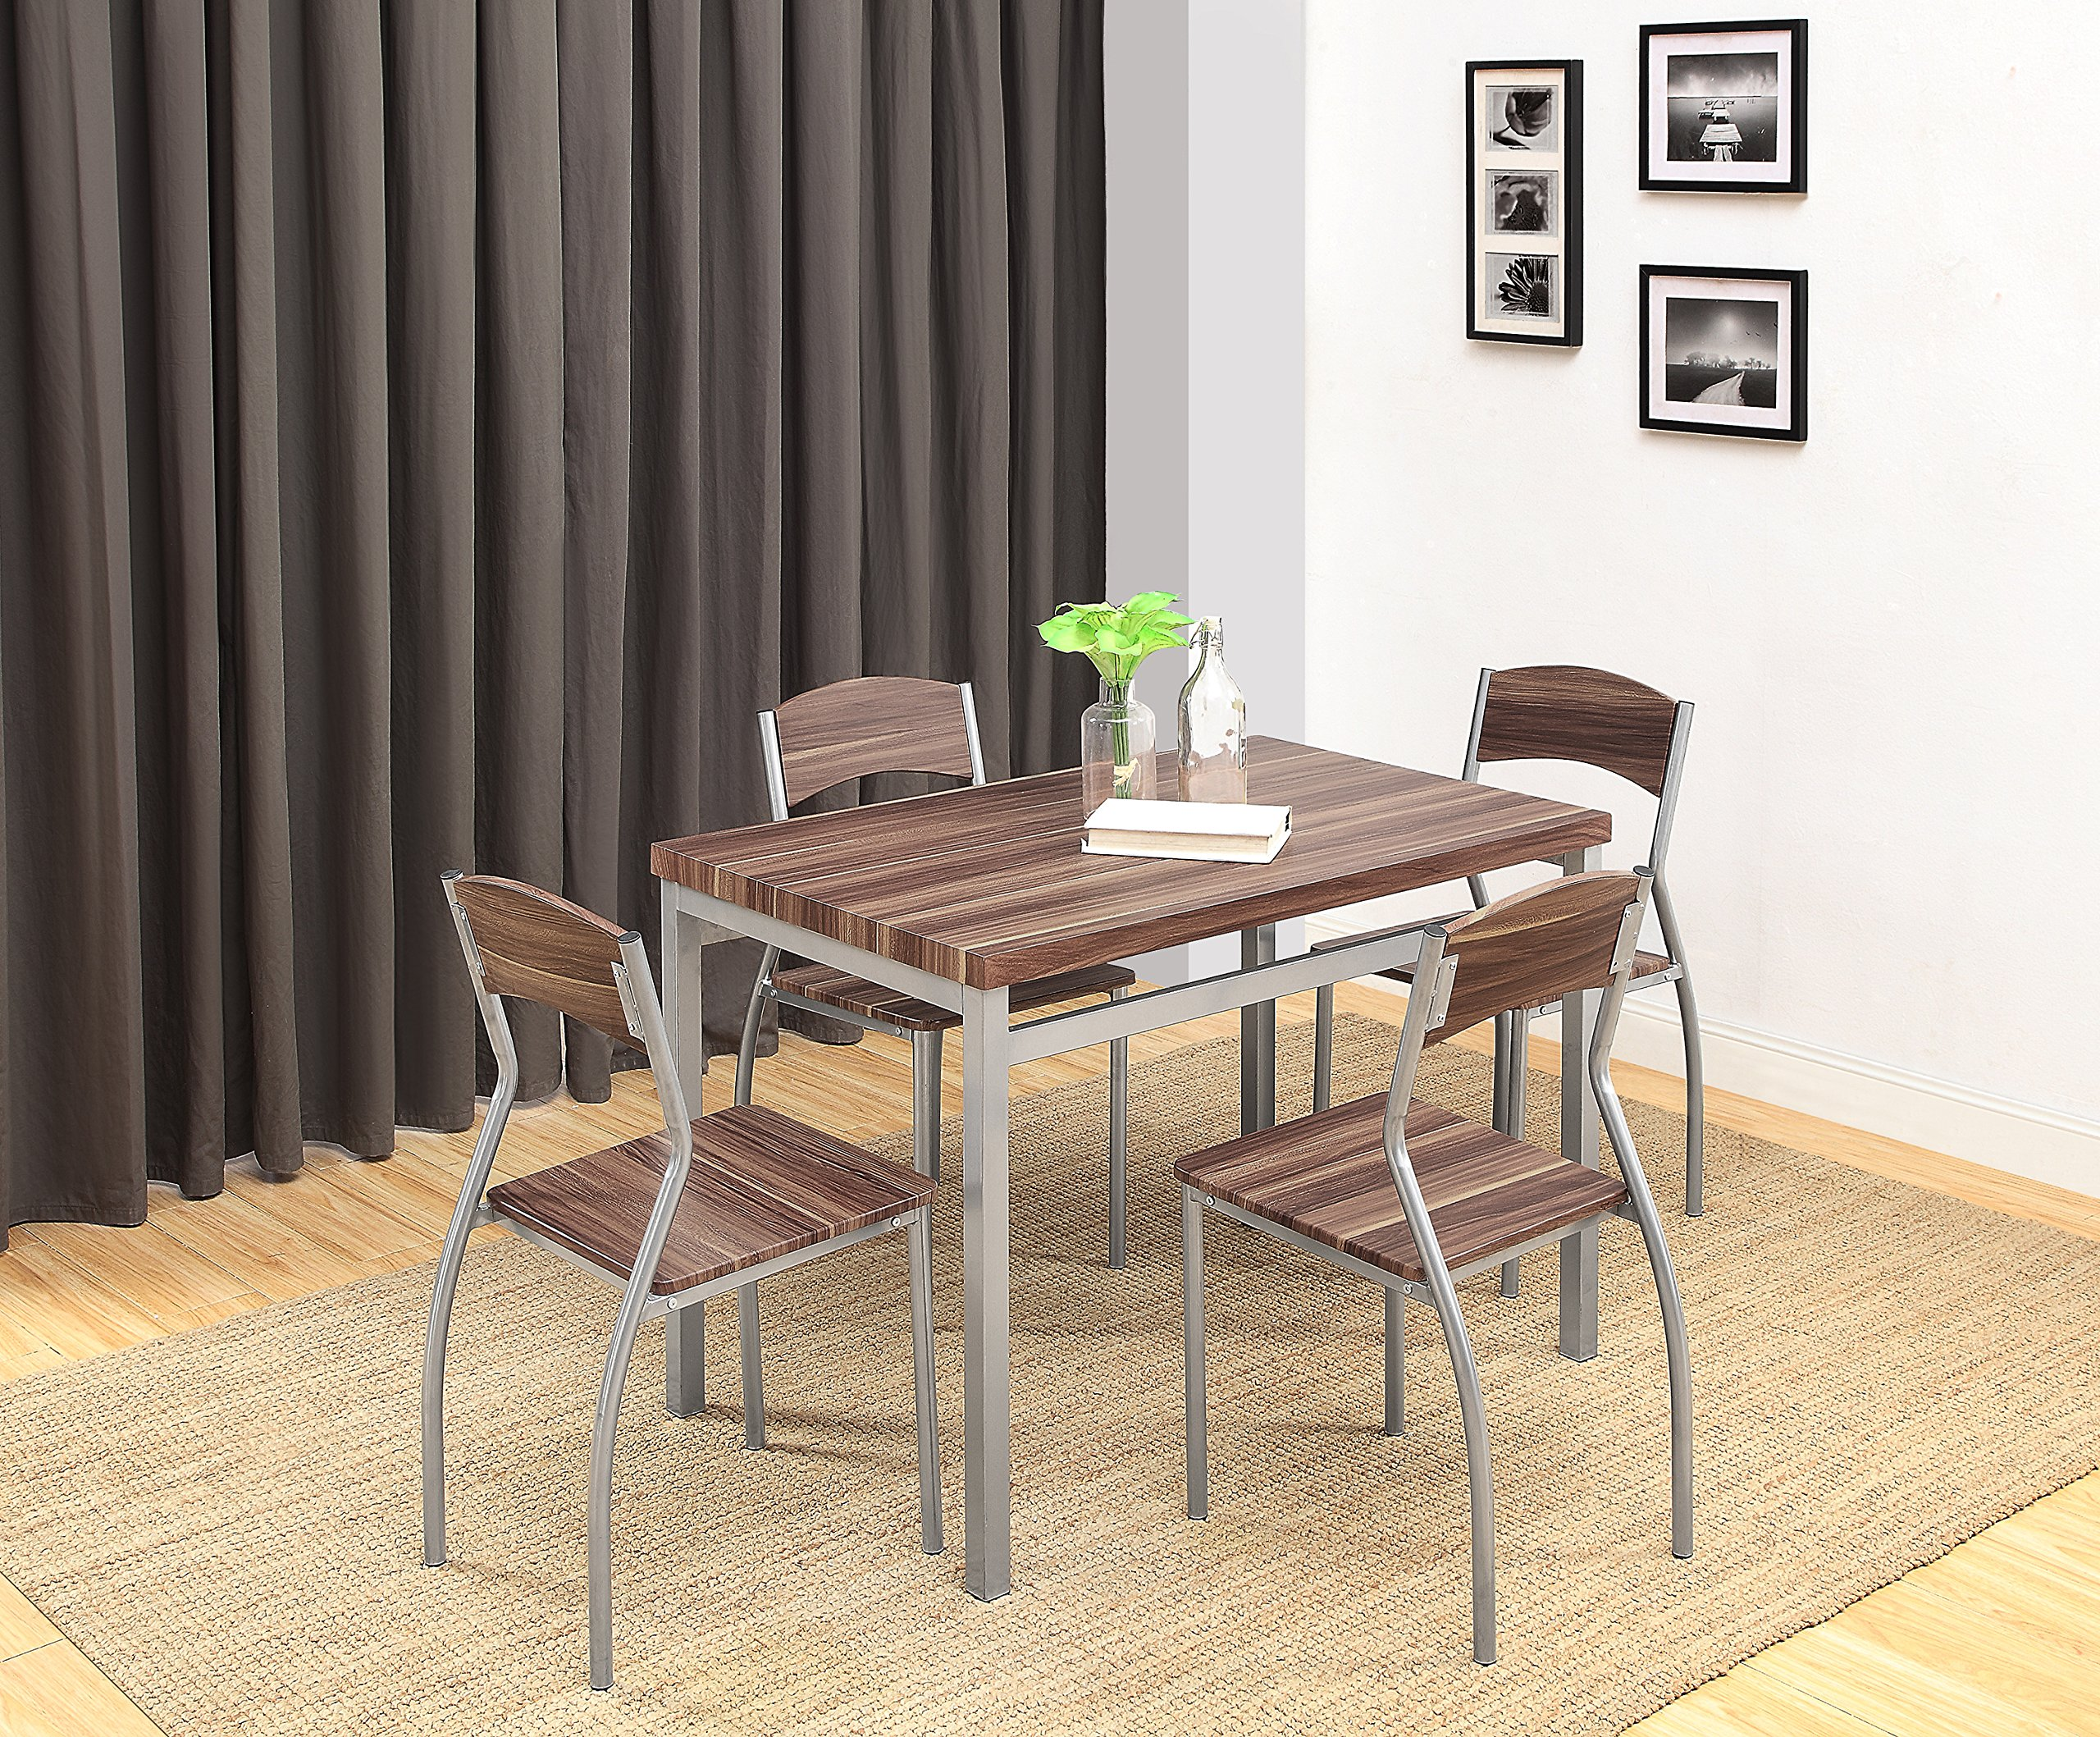 Abington Lane 5-Piece Dining Table Set with 4 Chairs - Modern and Sleek Dinette (Cedarwood Finish) by Abington Lane (Image #4)